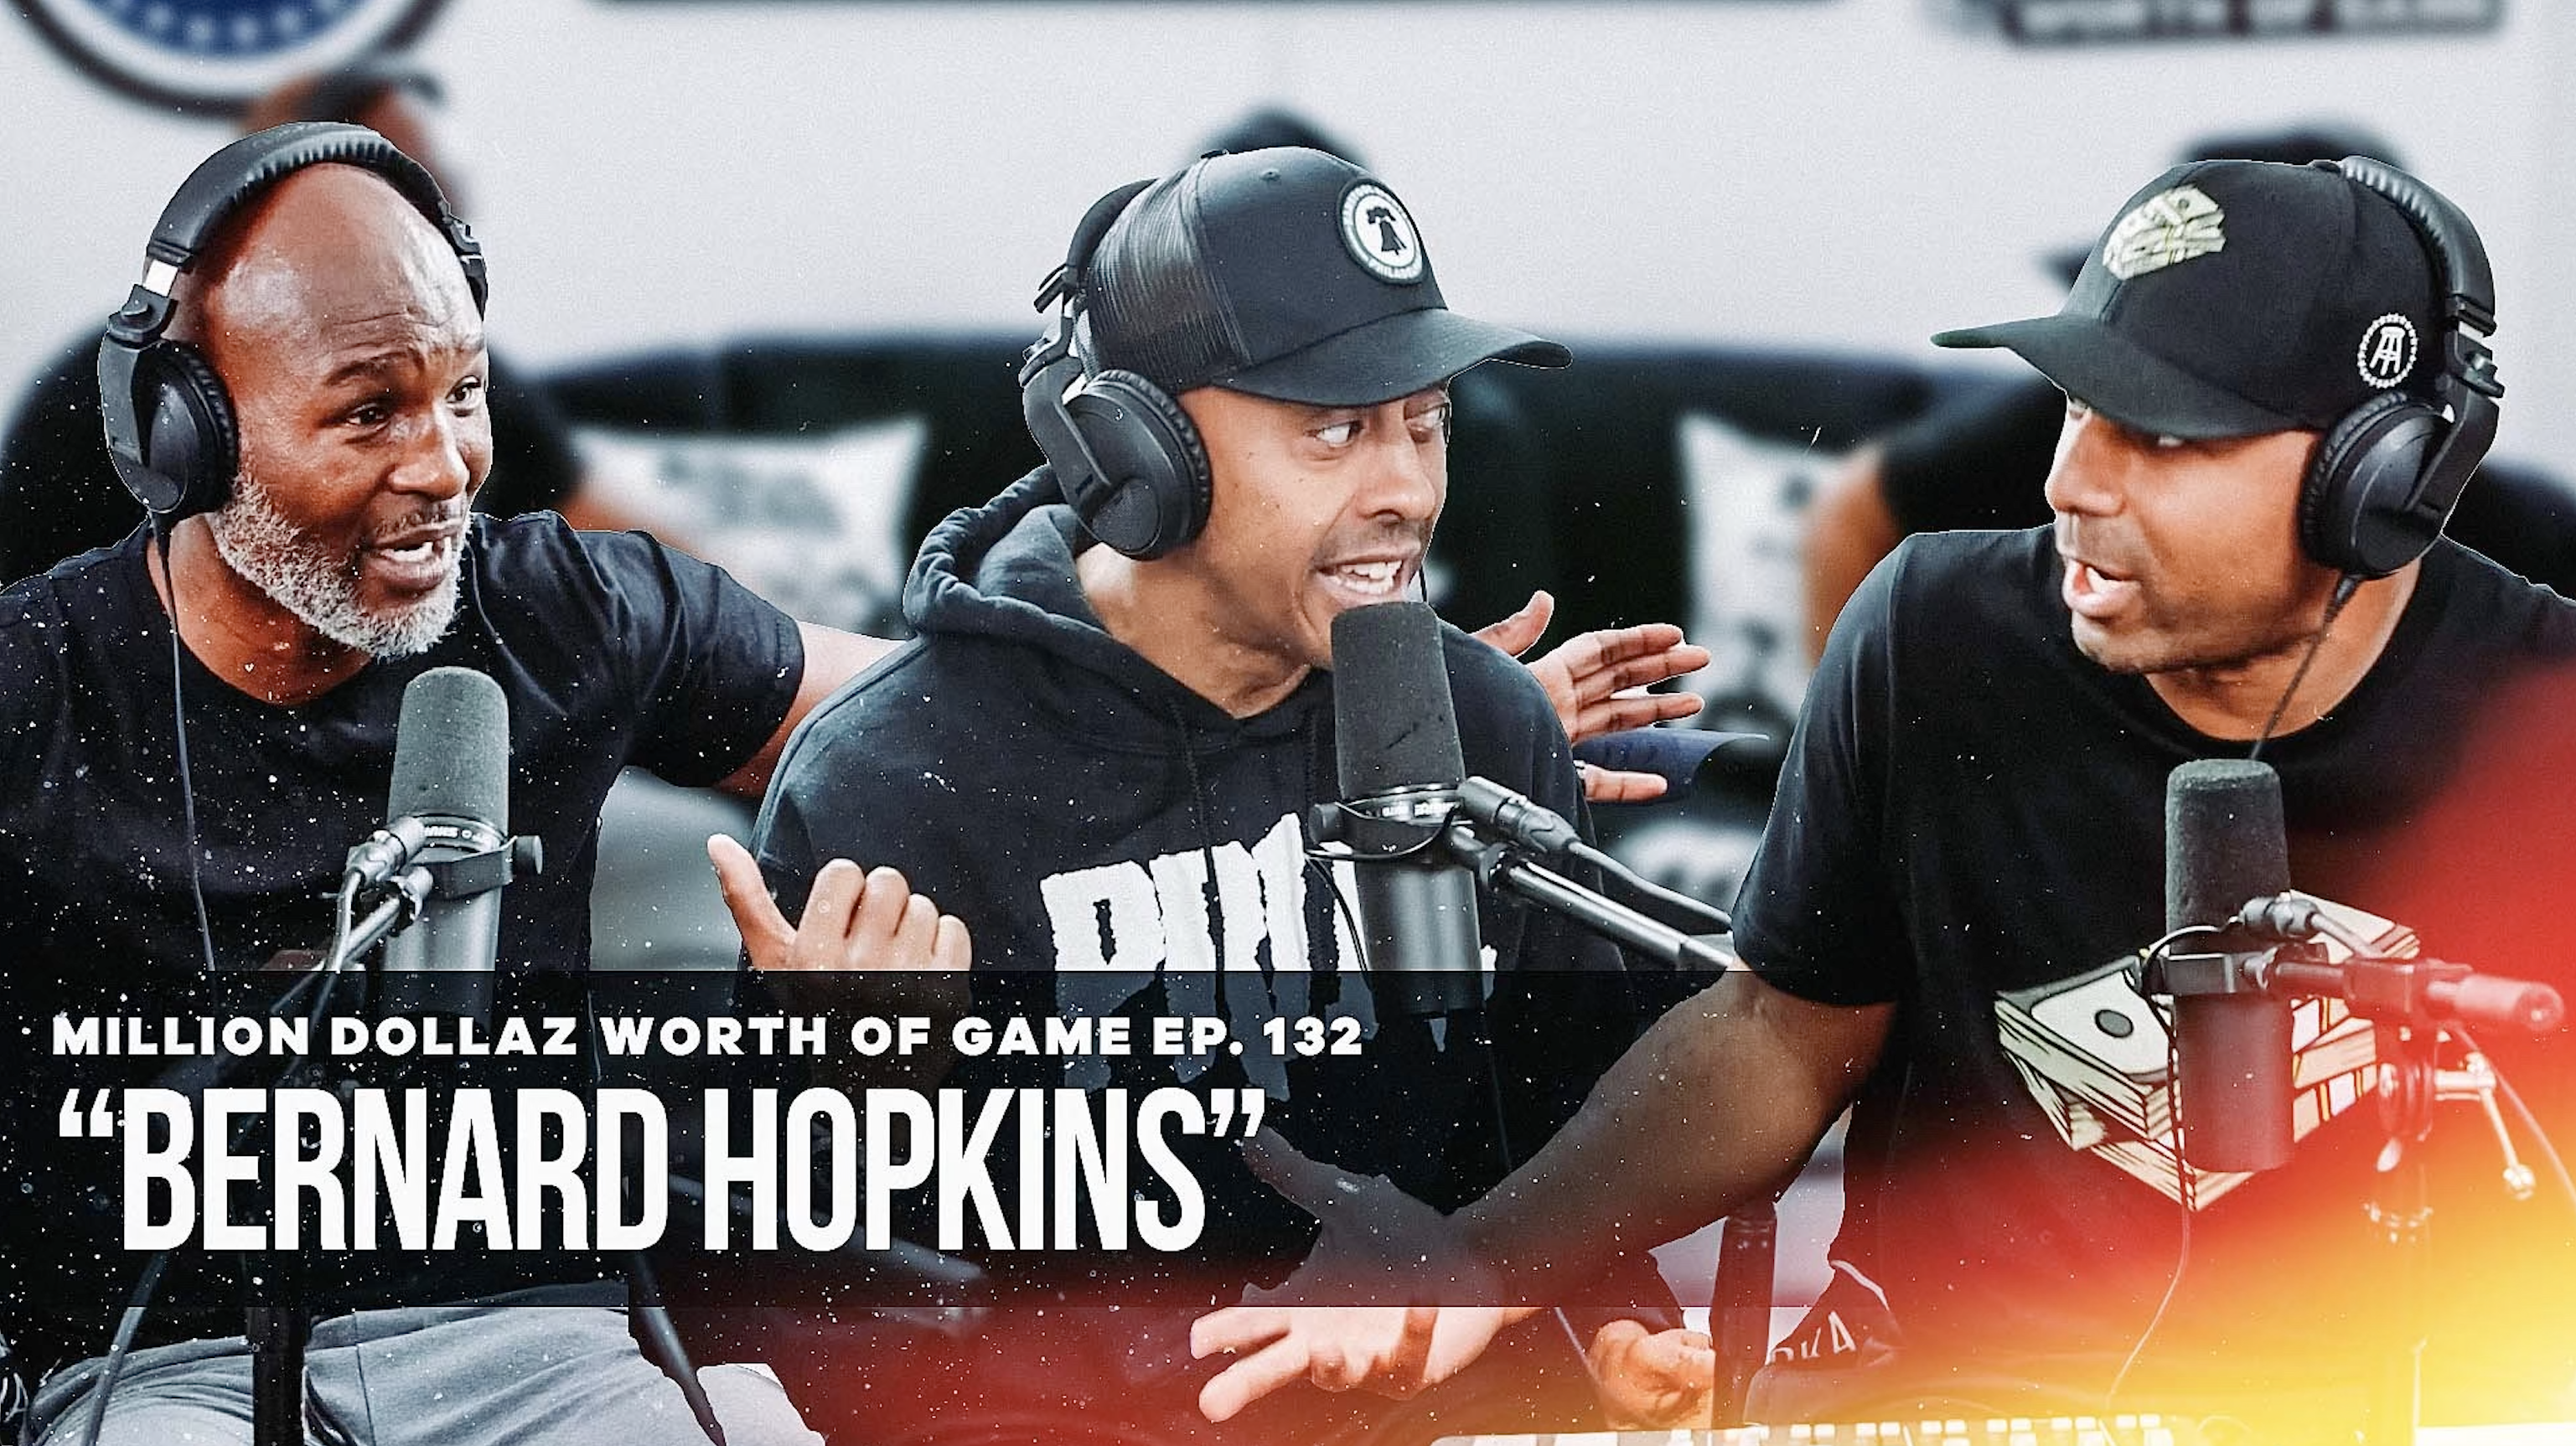 BERNARD HOPKINS: THE OLDEST BOXING CHAMPION EVER JOINED THE MILLION DOLLAZ CREW FOR EP. 132